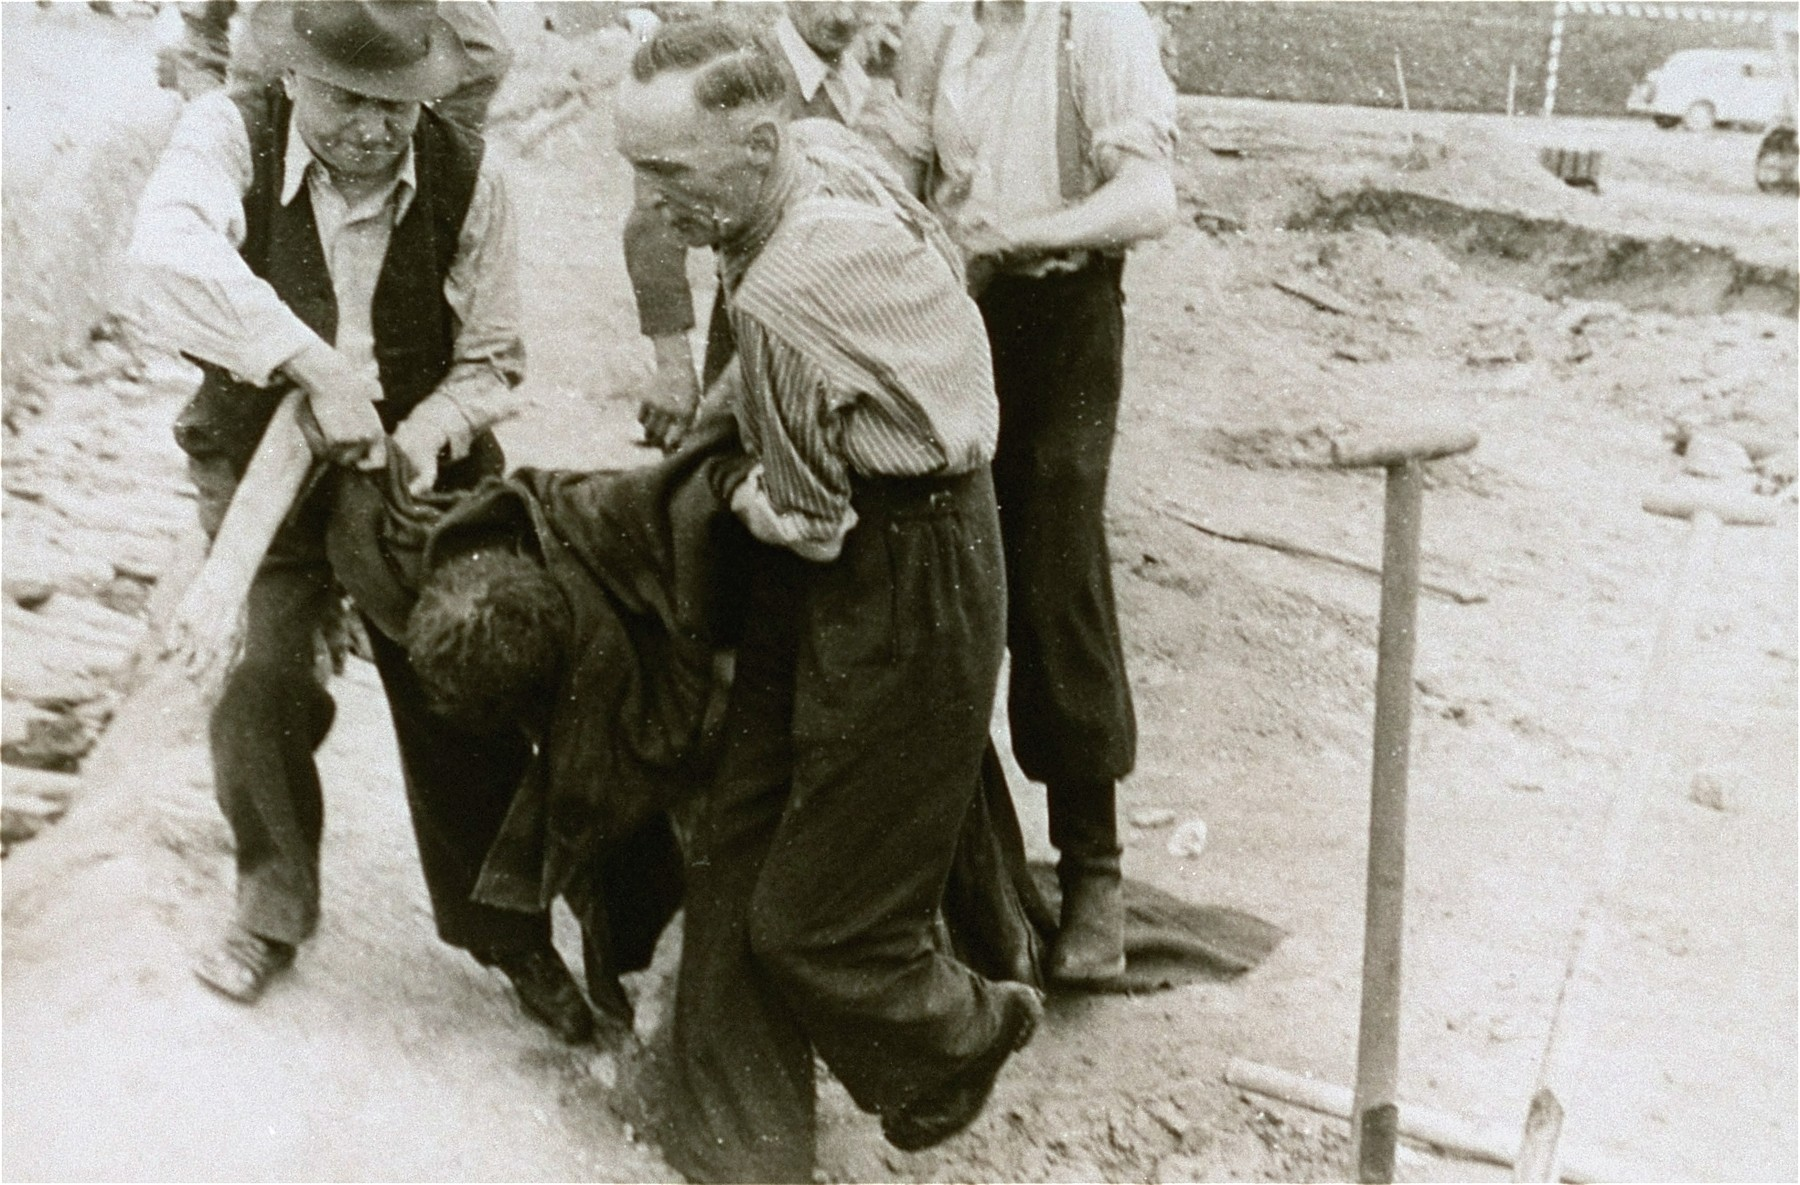 Austrian civilians carry the body of a former inmate to a mass grave in the Gusen concentration camp.